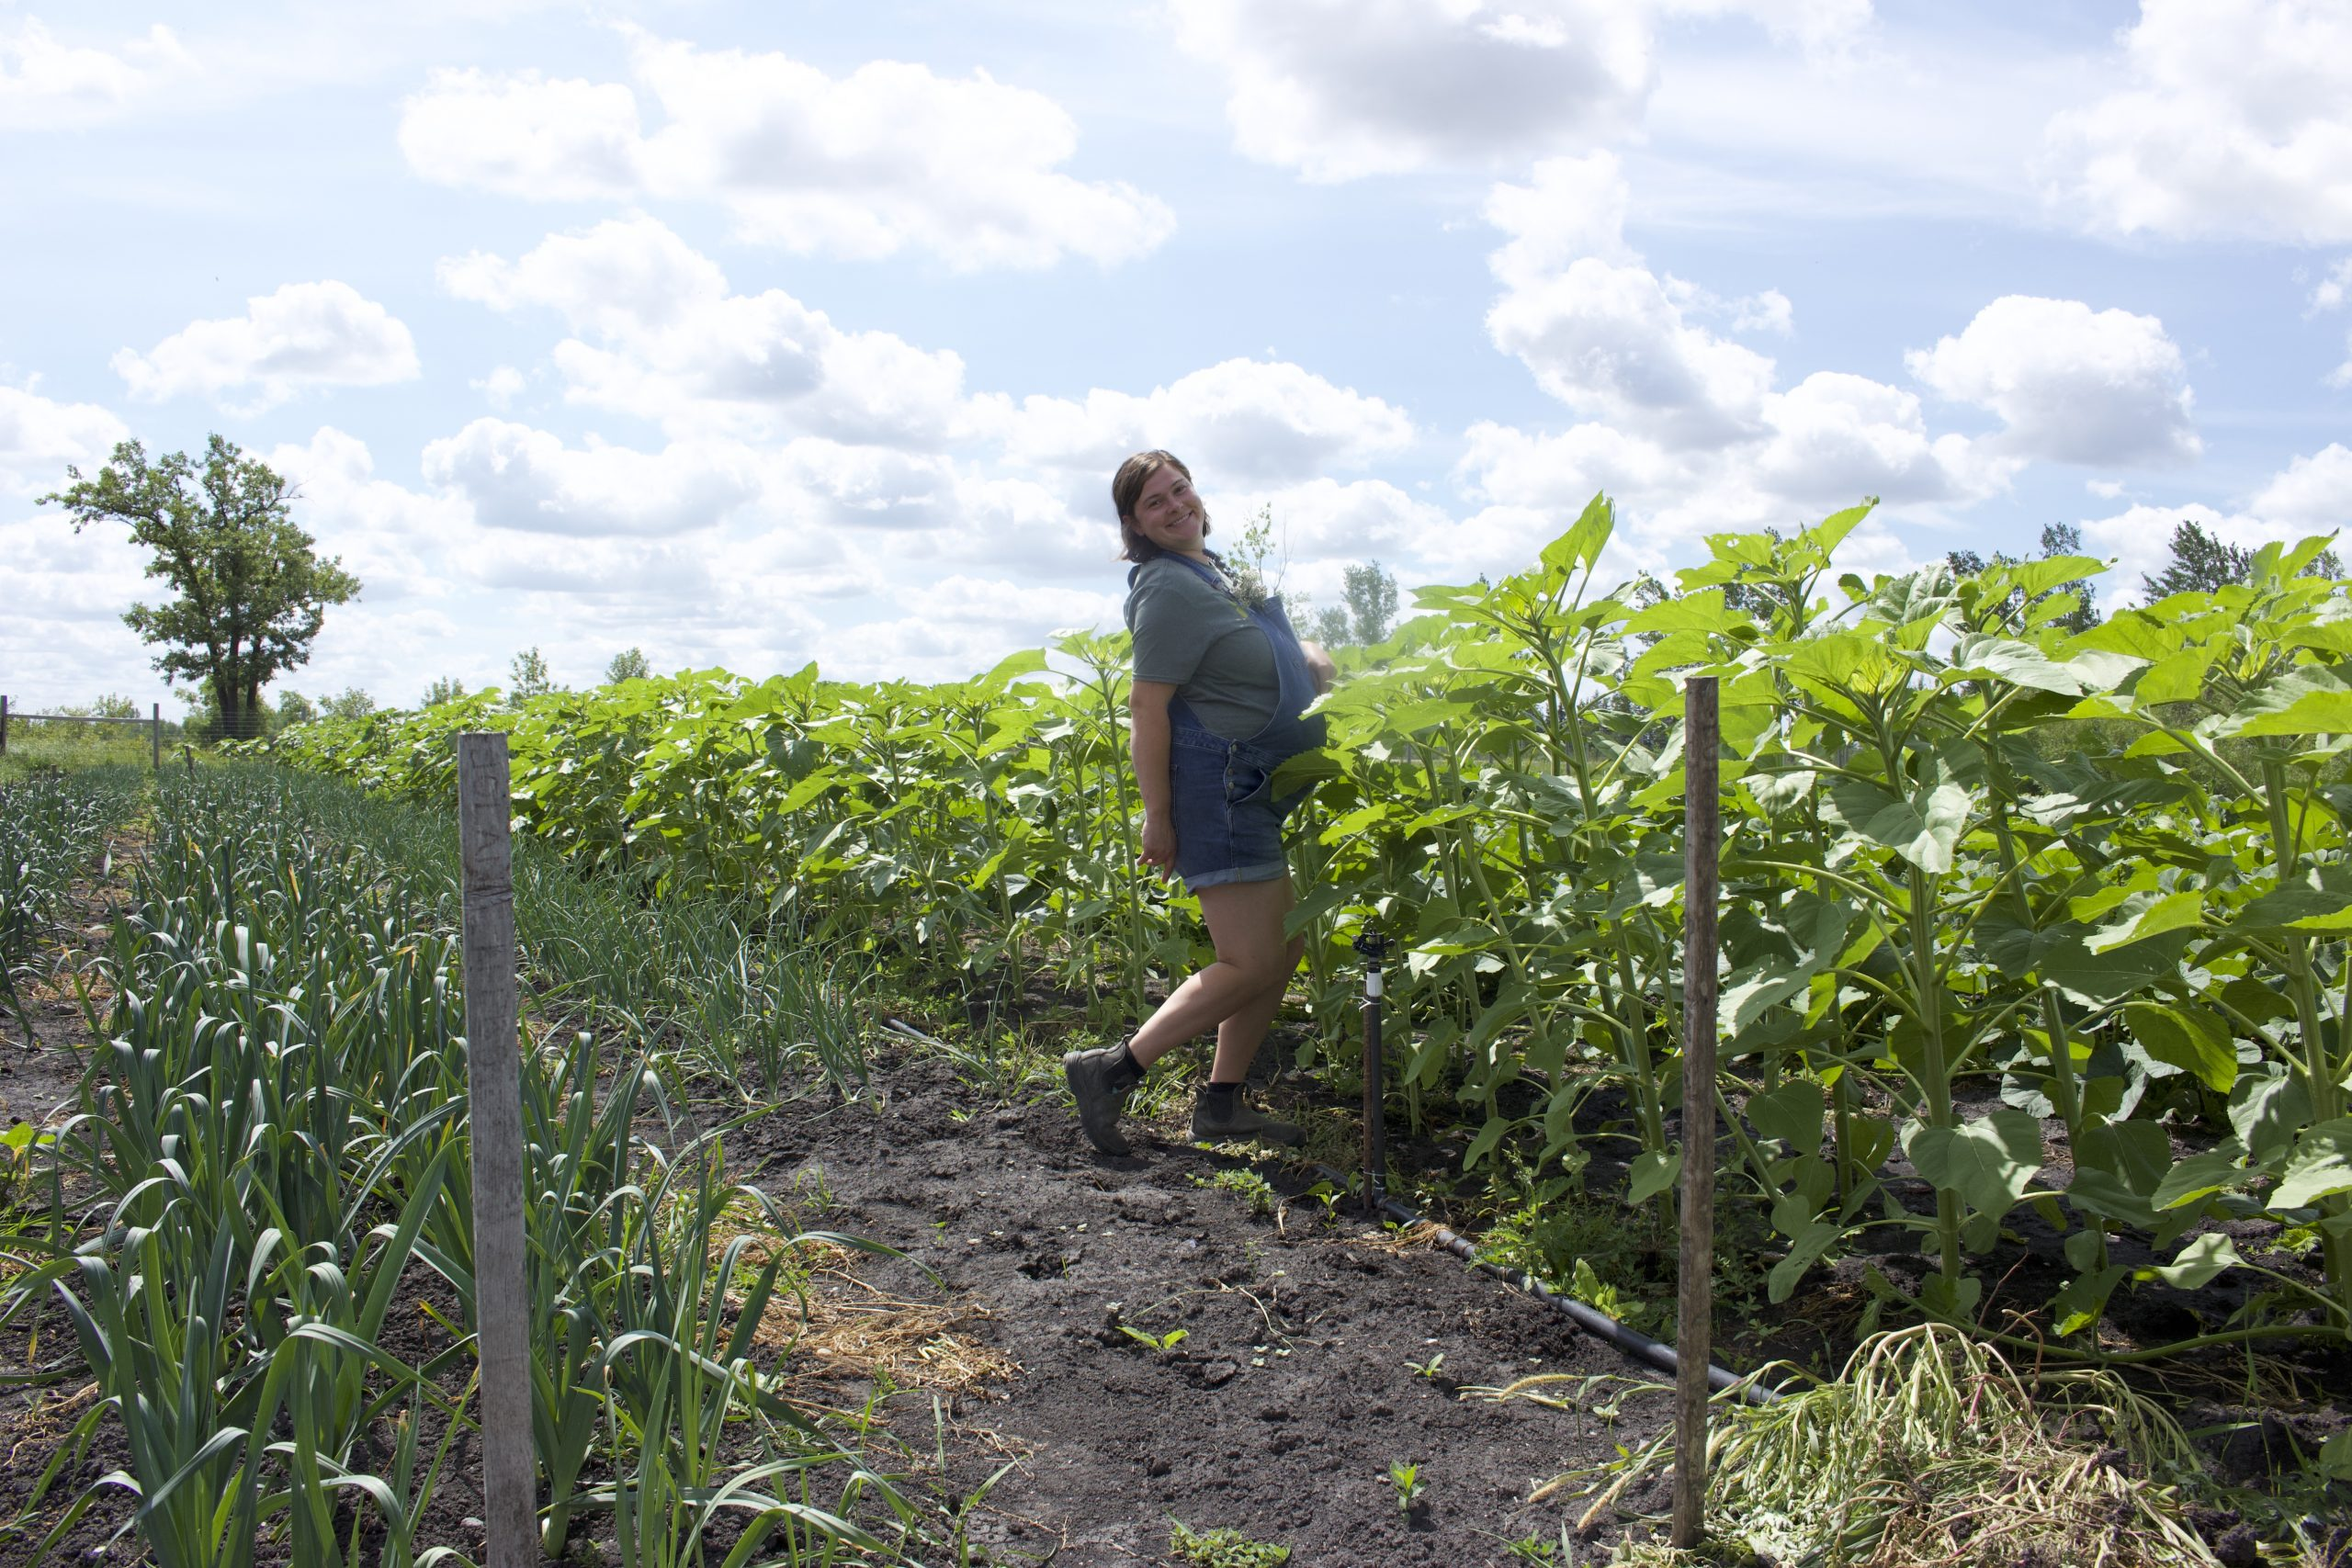 Heather stands in a field of soon-to-bloom sunflowers